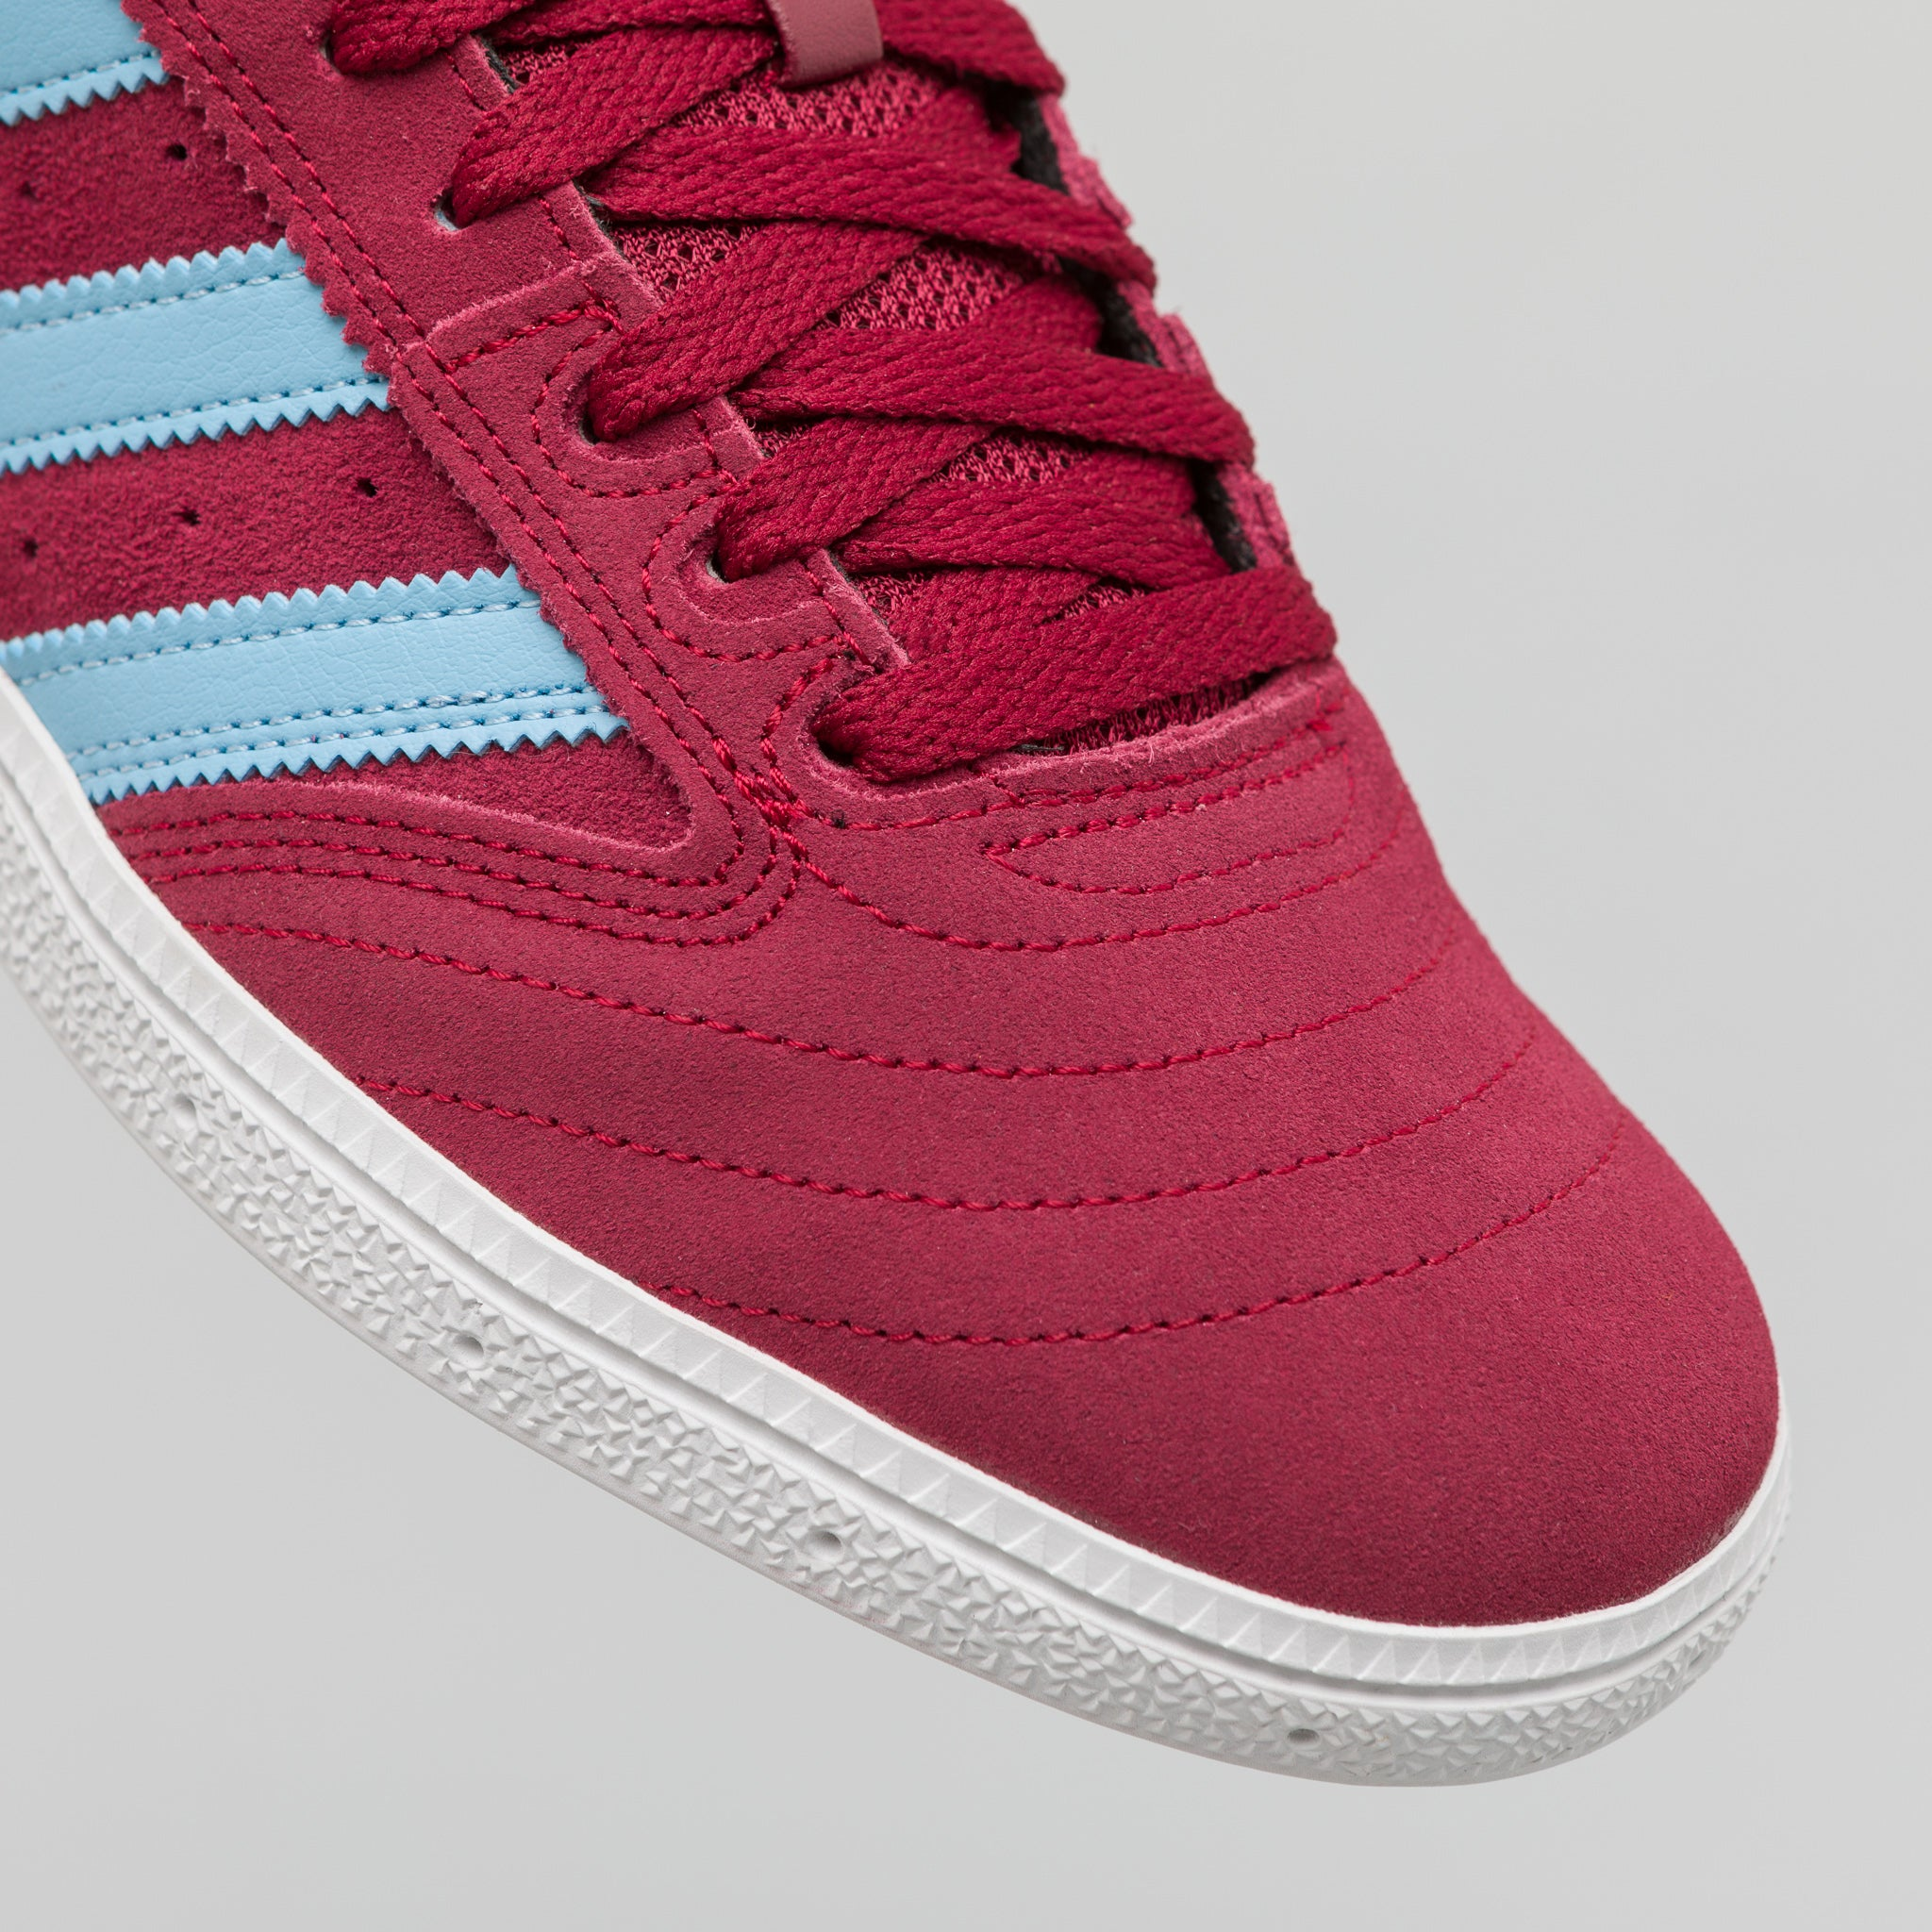 Busenitz in Burgundy/Blue